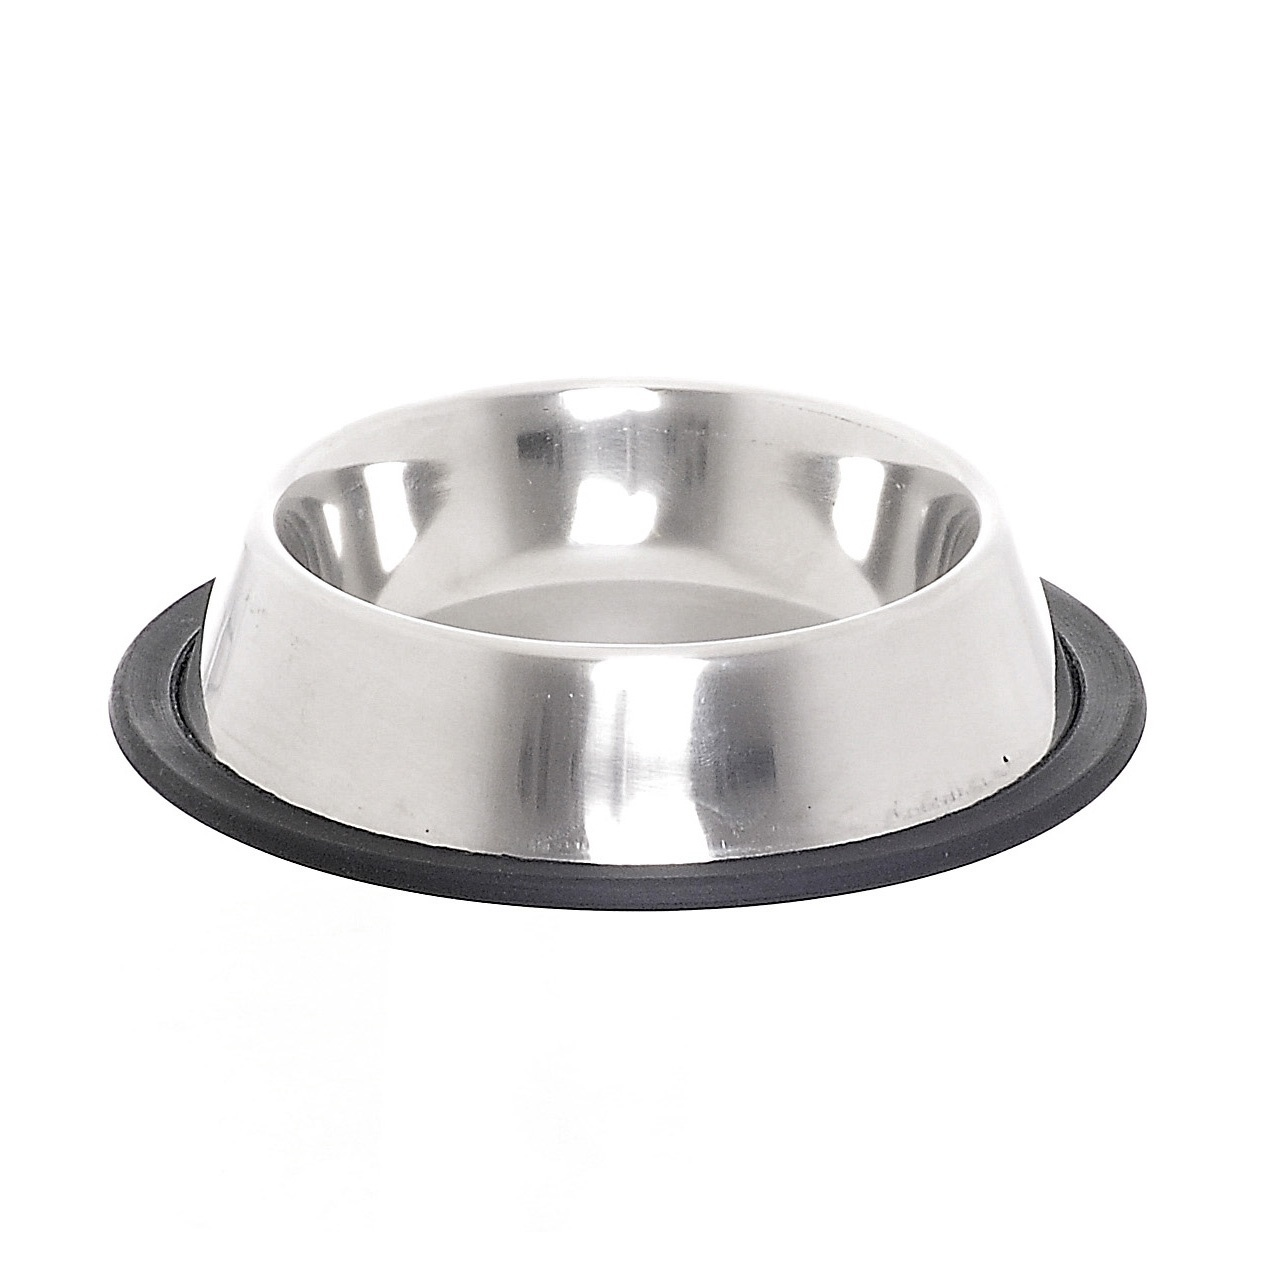 PAPILLON Миска с нескользящим покрытием 23 см, 0,7 л , Anti skid feed bowl